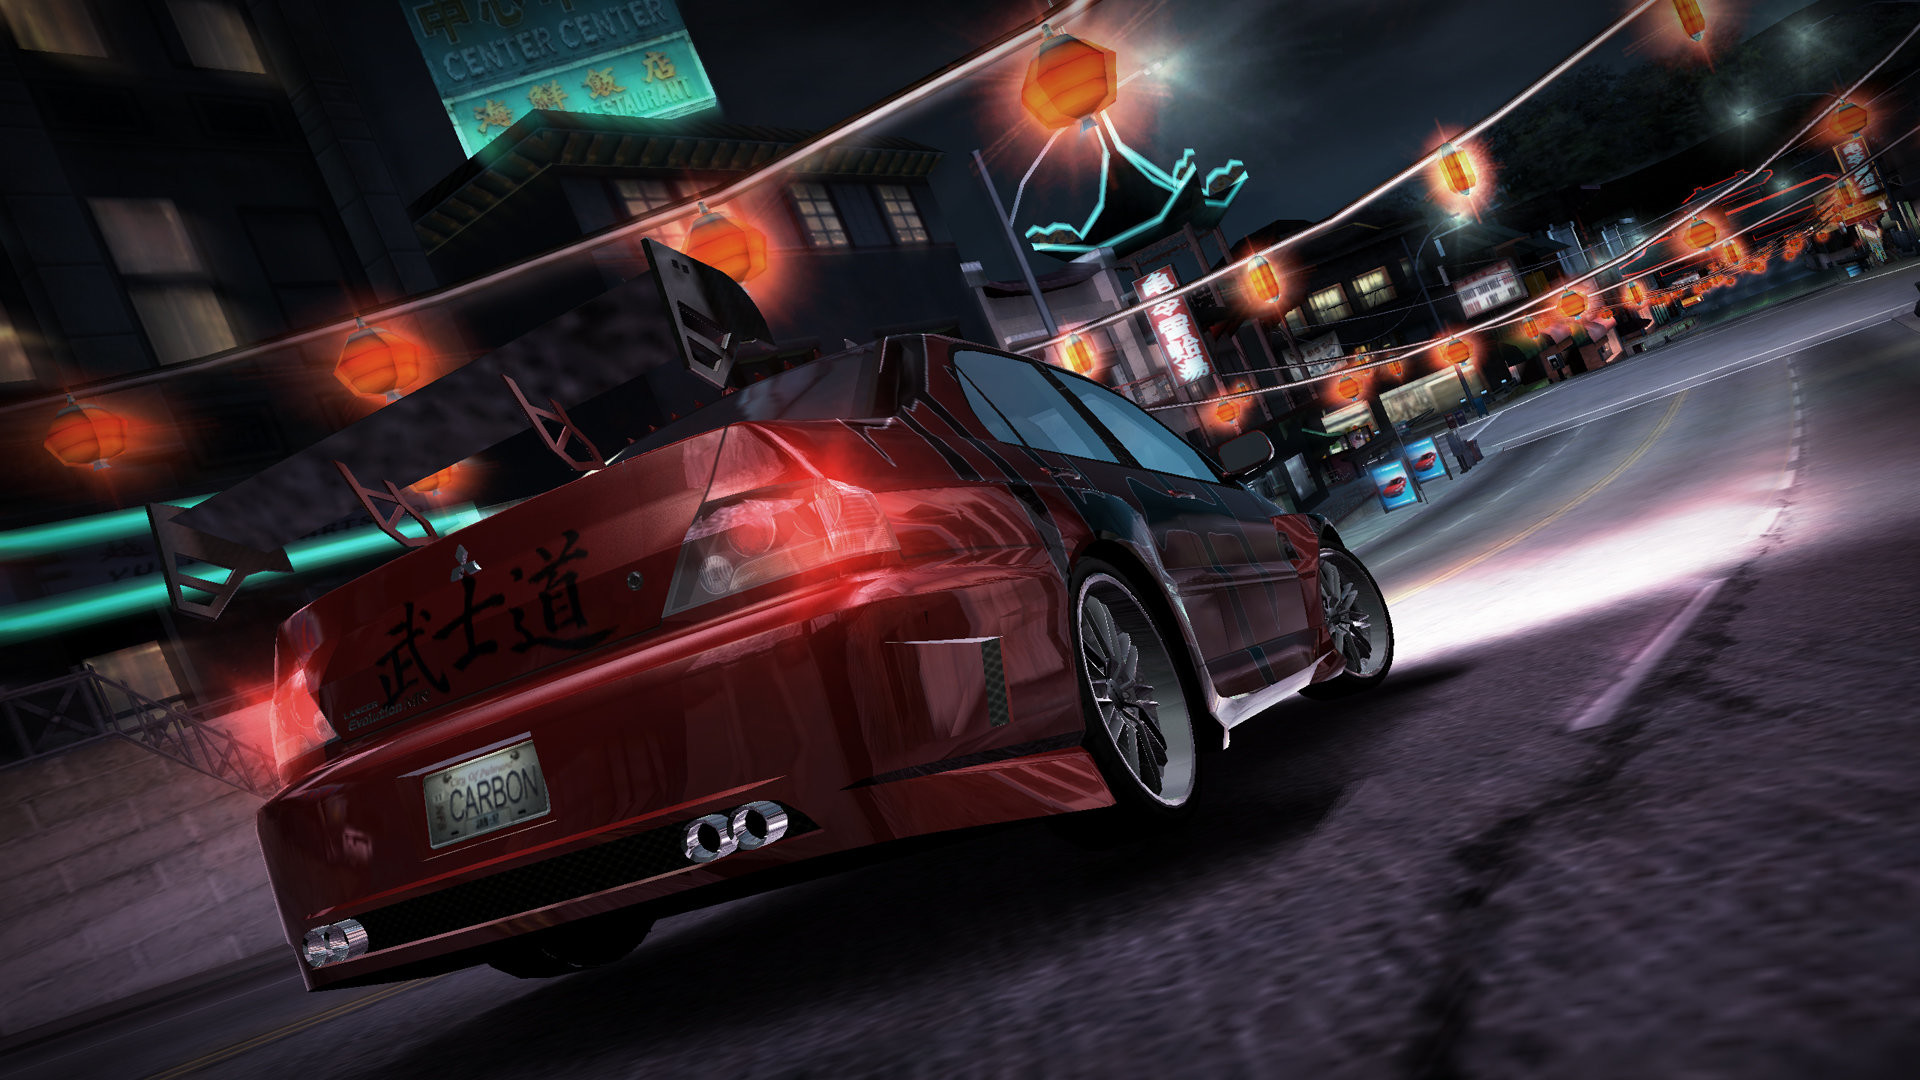 1920x1080 ... Need for Speed: Carbon - Collector's Edition - Fanart - Background ...